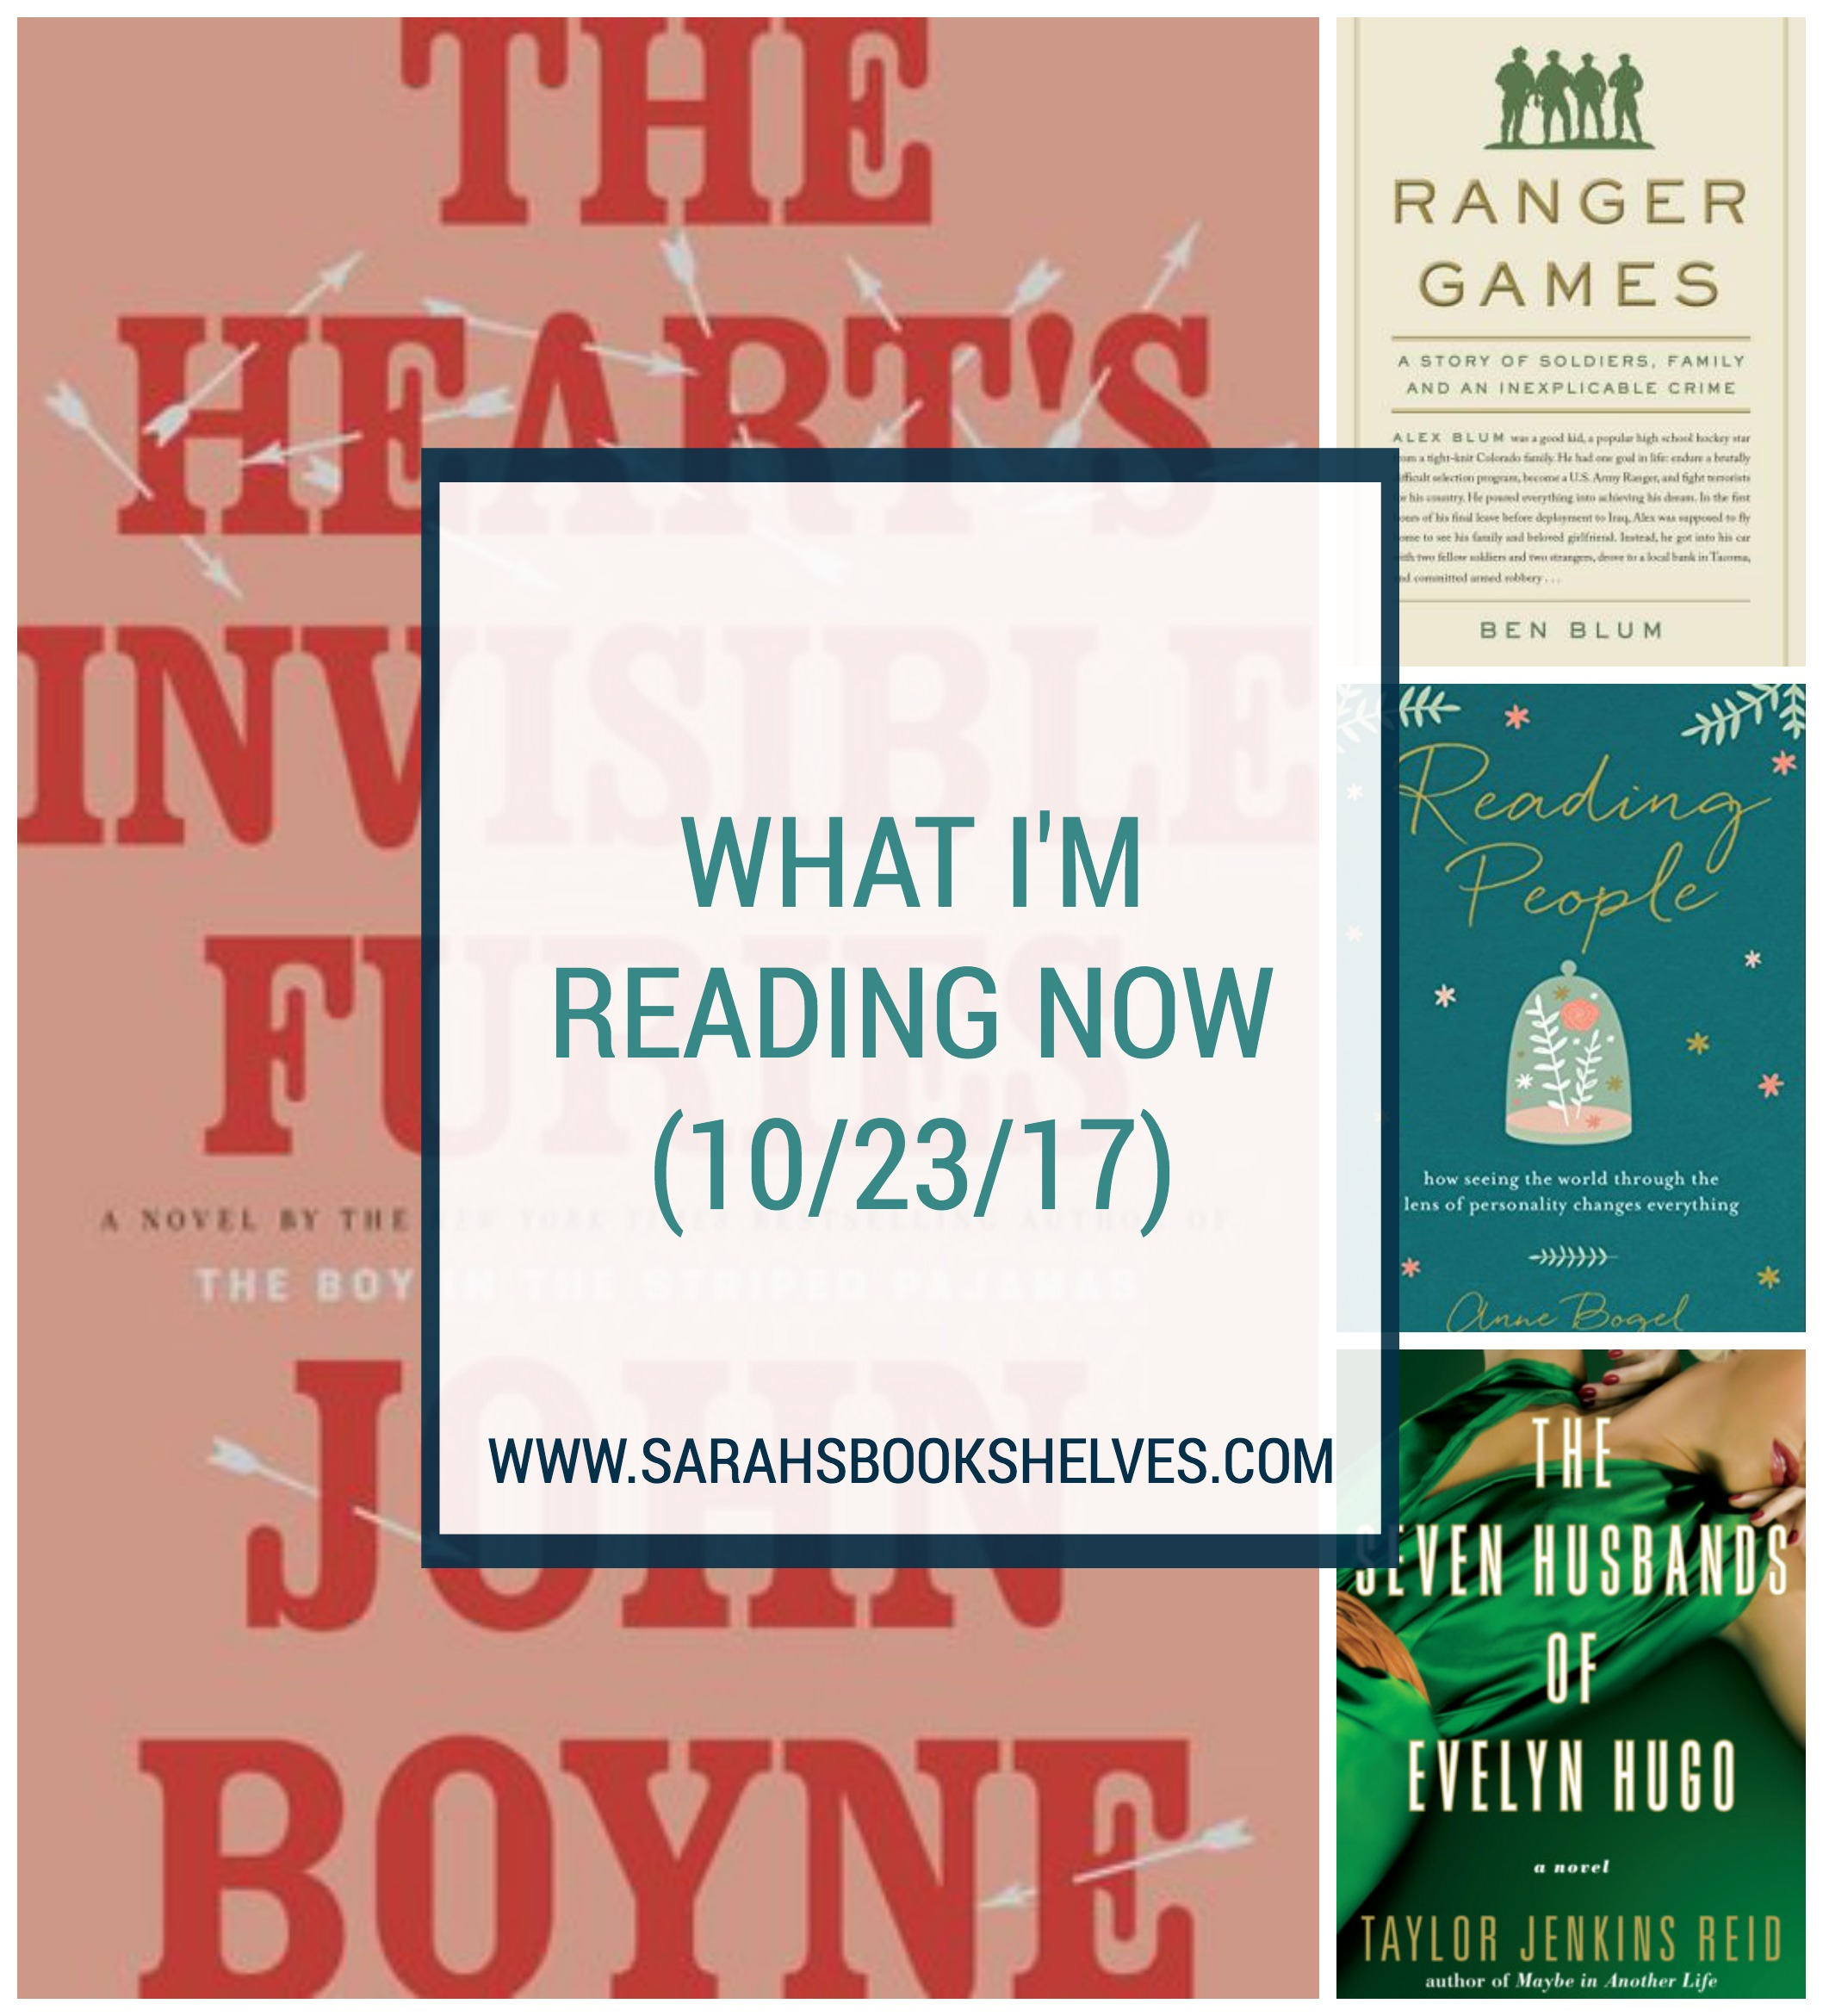 What I'm Reading Now (10/23/17): Finally! I found the long, immersive novel I've been looking for (The Heart's Invisible Furies) and it's one of my favorites of this year! I also finished Ranger Games and Reading People on audio (@modernmrsdarcy) and started The Seven Husbands of Evelyn Hugo. #reading #book #bookish #bookworms #booklovers